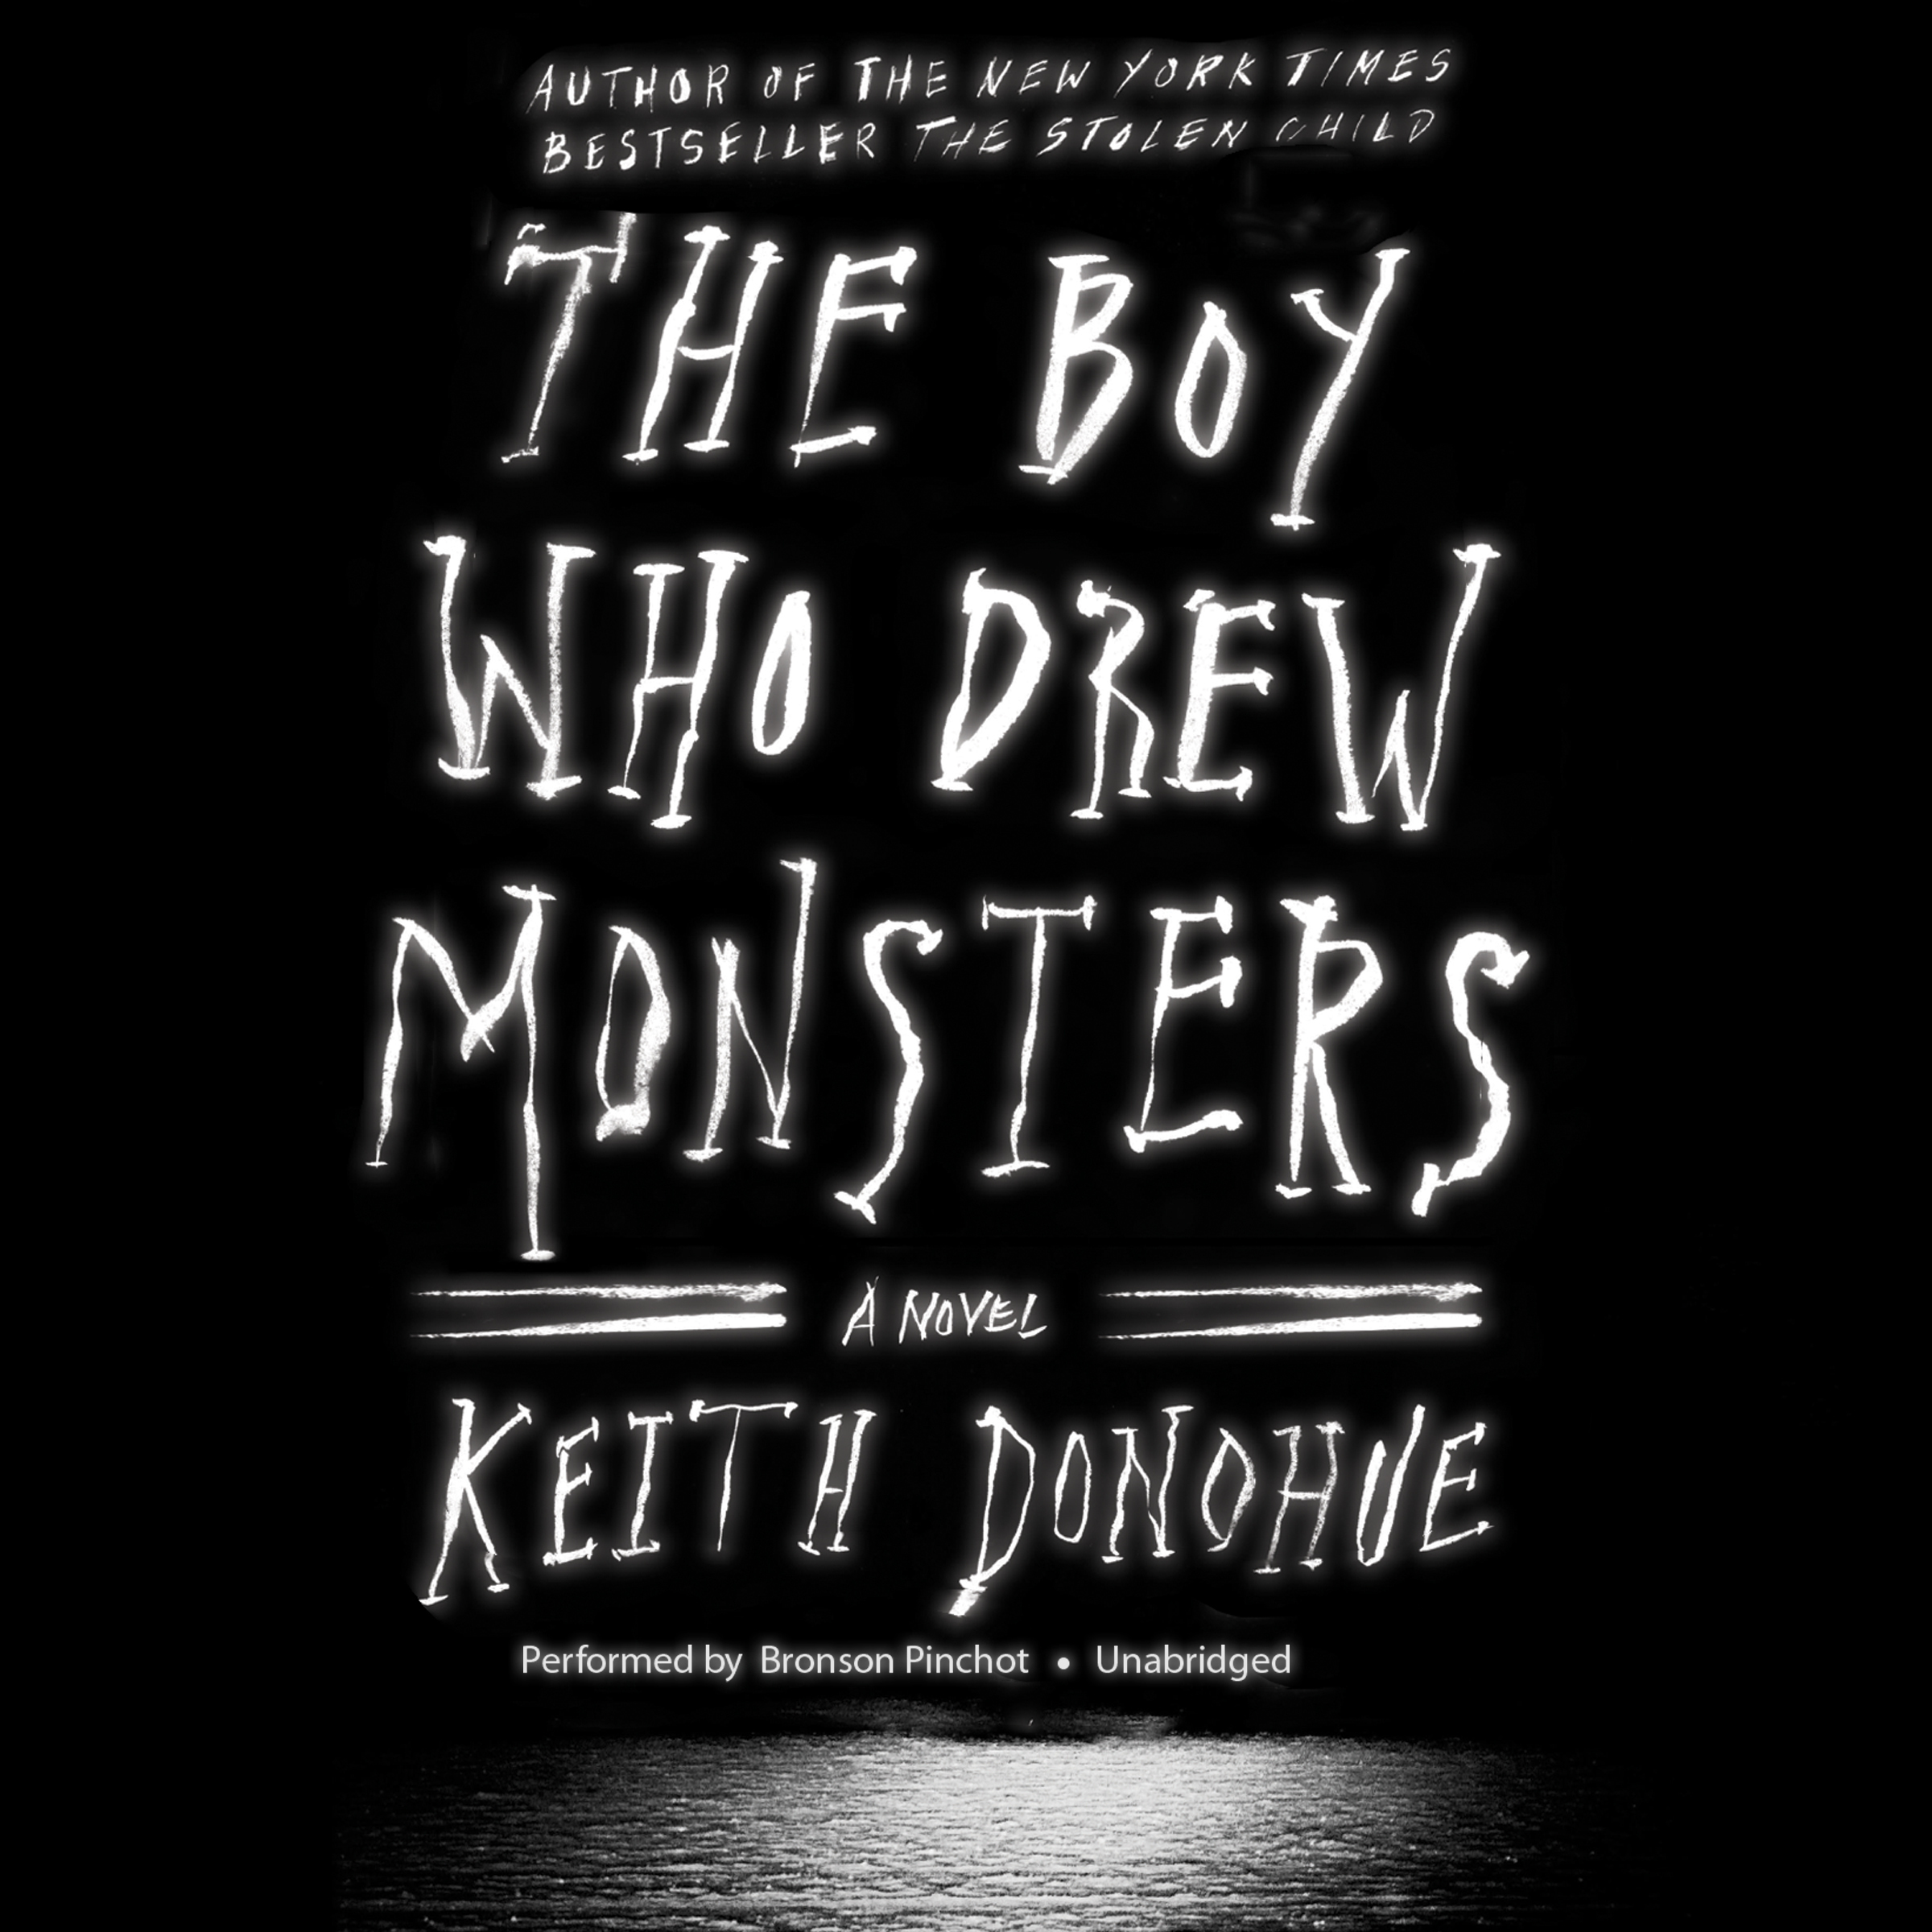 Laura's blog: Audiobook Review: The Boy Who Drew Monsters by Keith